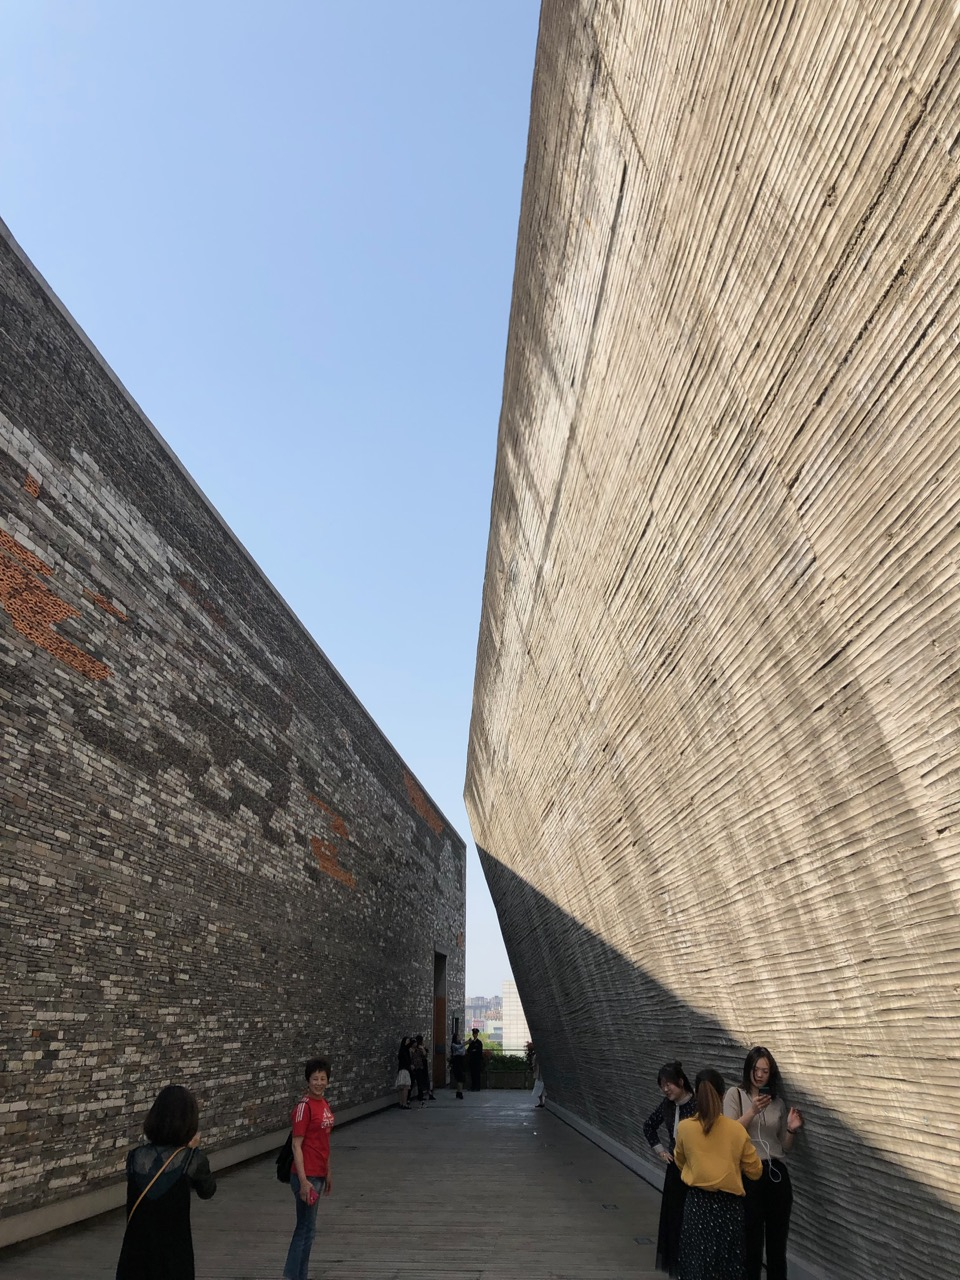 Tourists on the rooftop of the Ningbo Museum